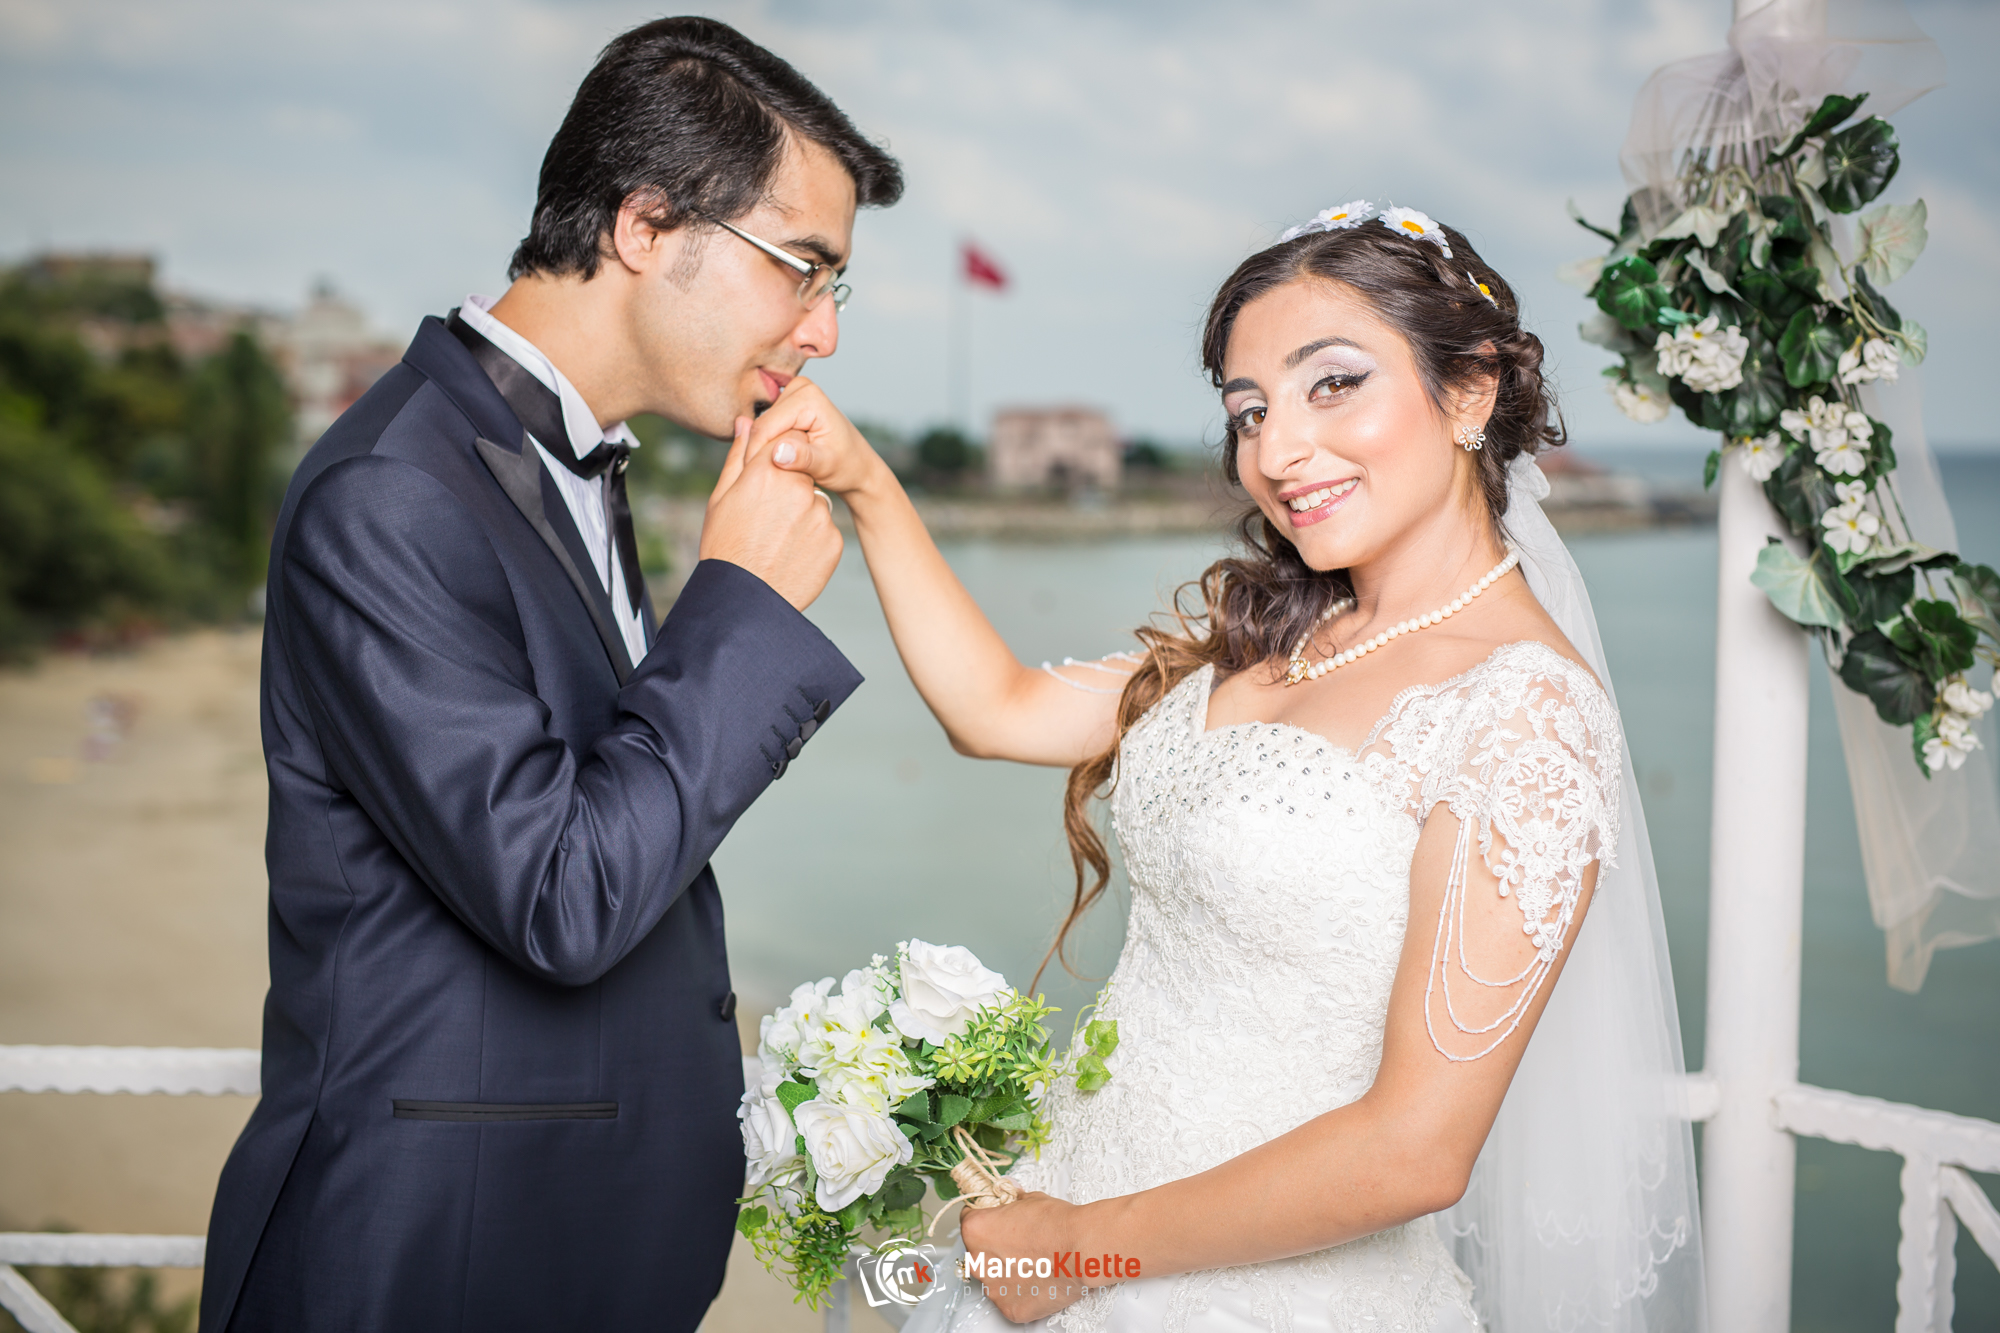 instanbul-wedding-web-46